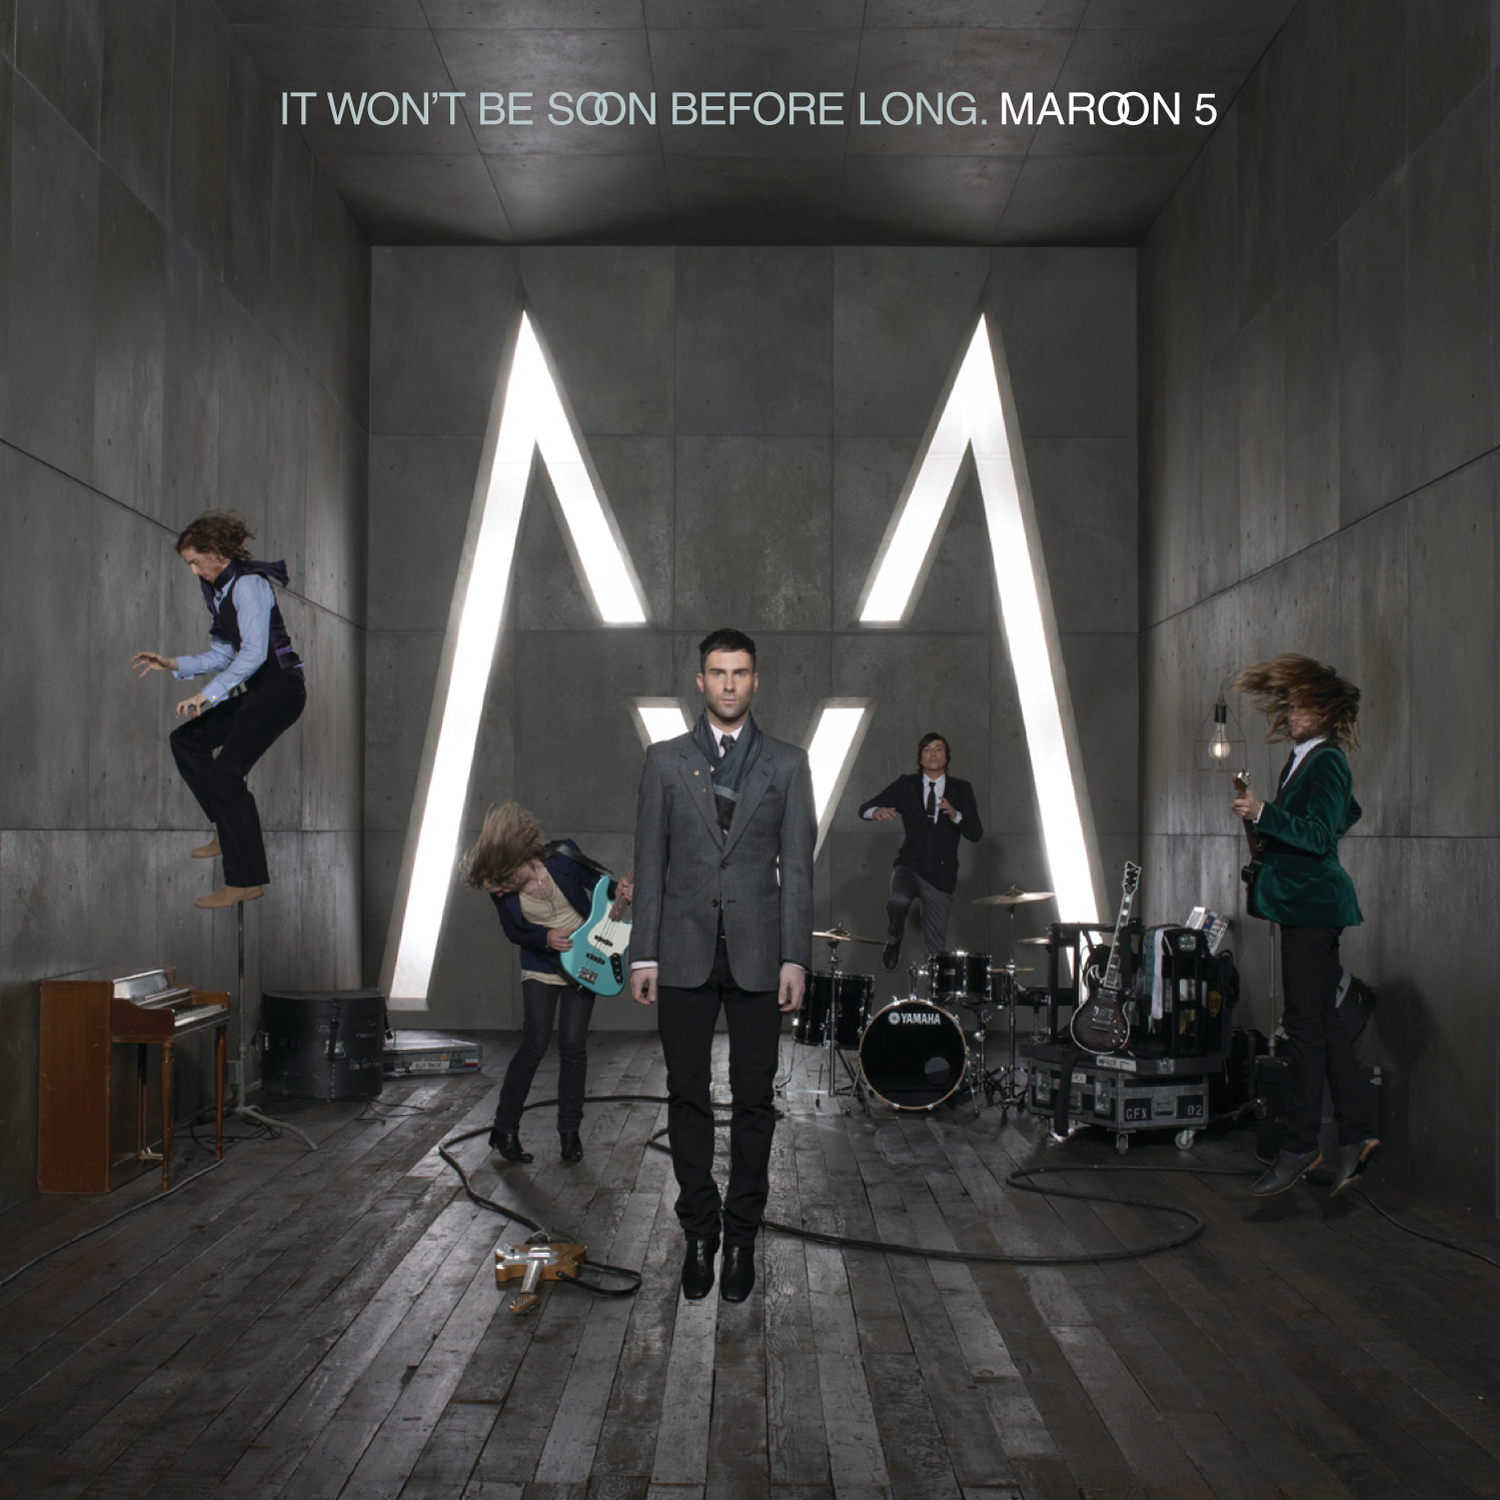 OP-ED: Ten years later, 'It Won't Be Soon Before Long' is still Maroon 5 at their best